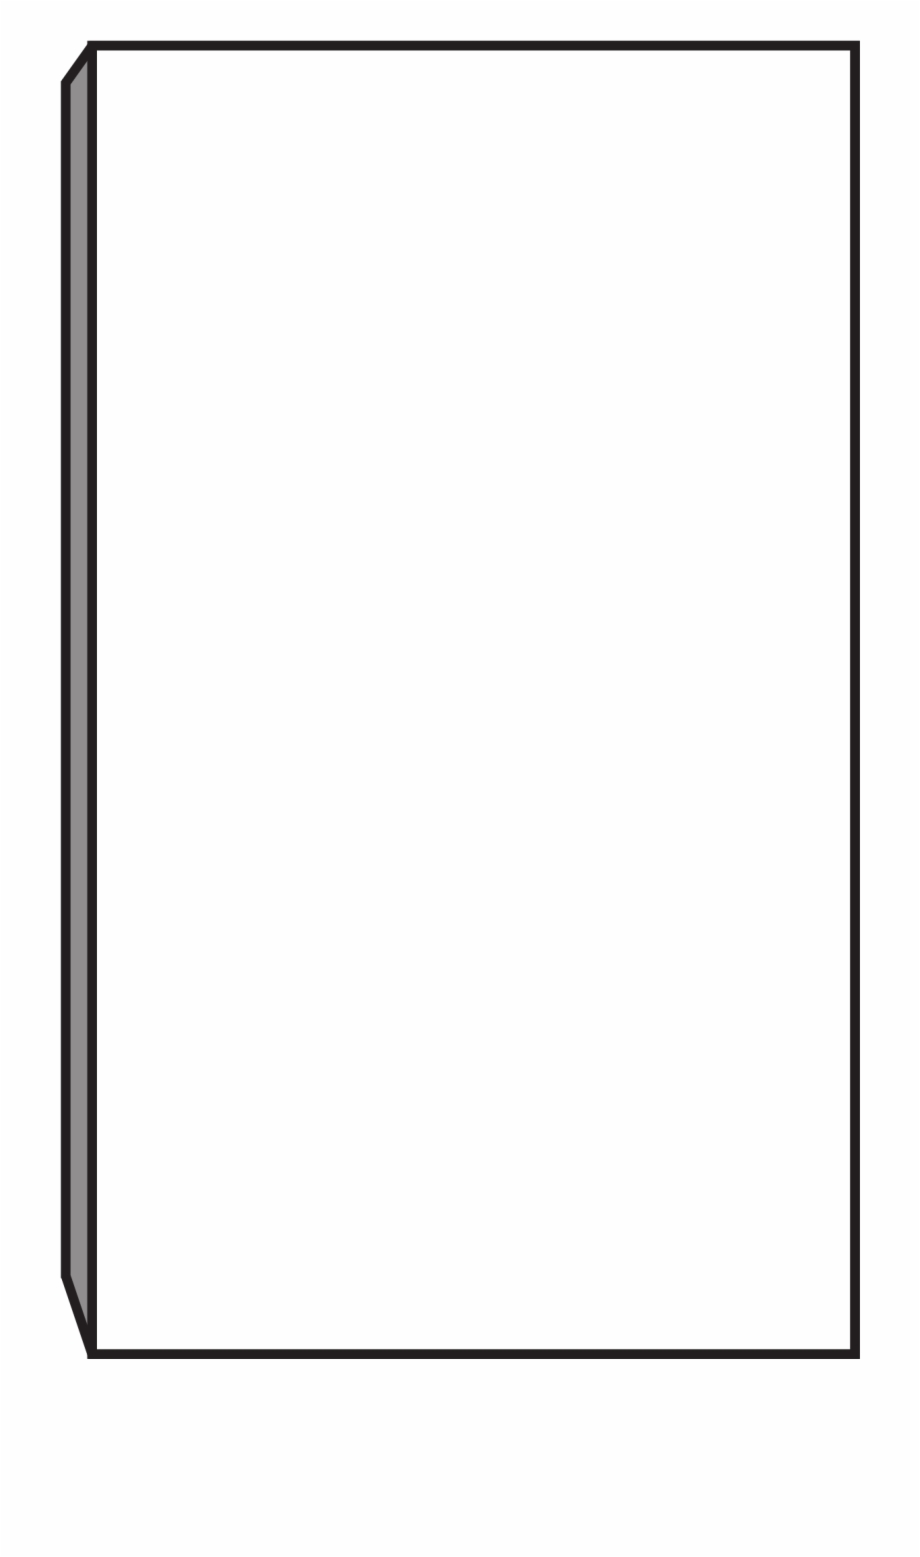 3d rectangle box clipart banner transparent This Free Icons Png Design Of 3d Box - Monochrome Free PNG Images ... banner transparent